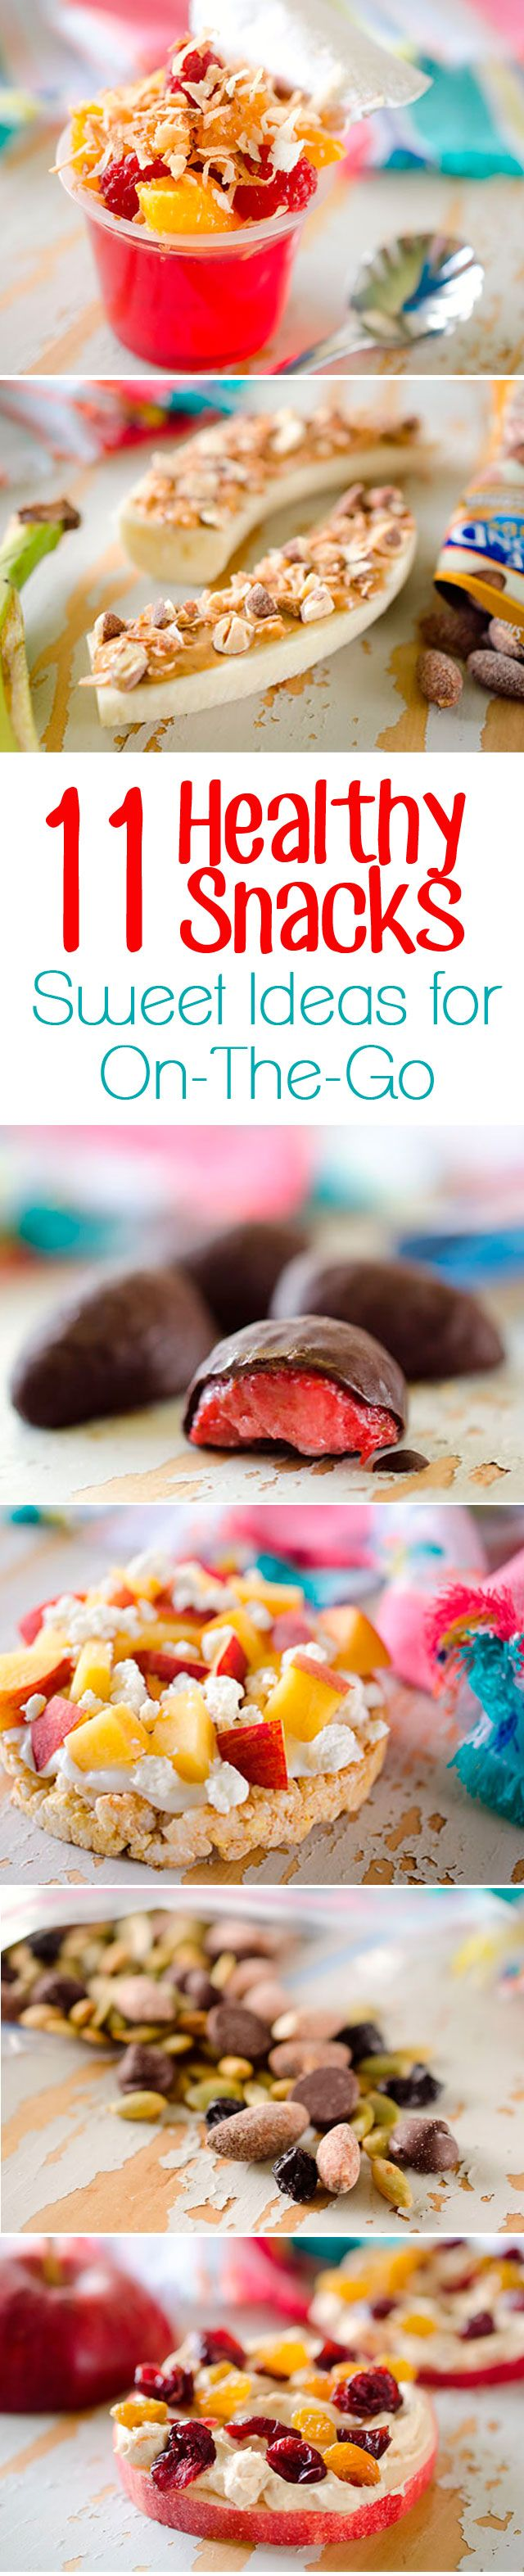 This list of 11 Healthy Snacks   Sweet Ideas for On The Go is amazing  These unique treats are quick snack ideas that are loaded with protein